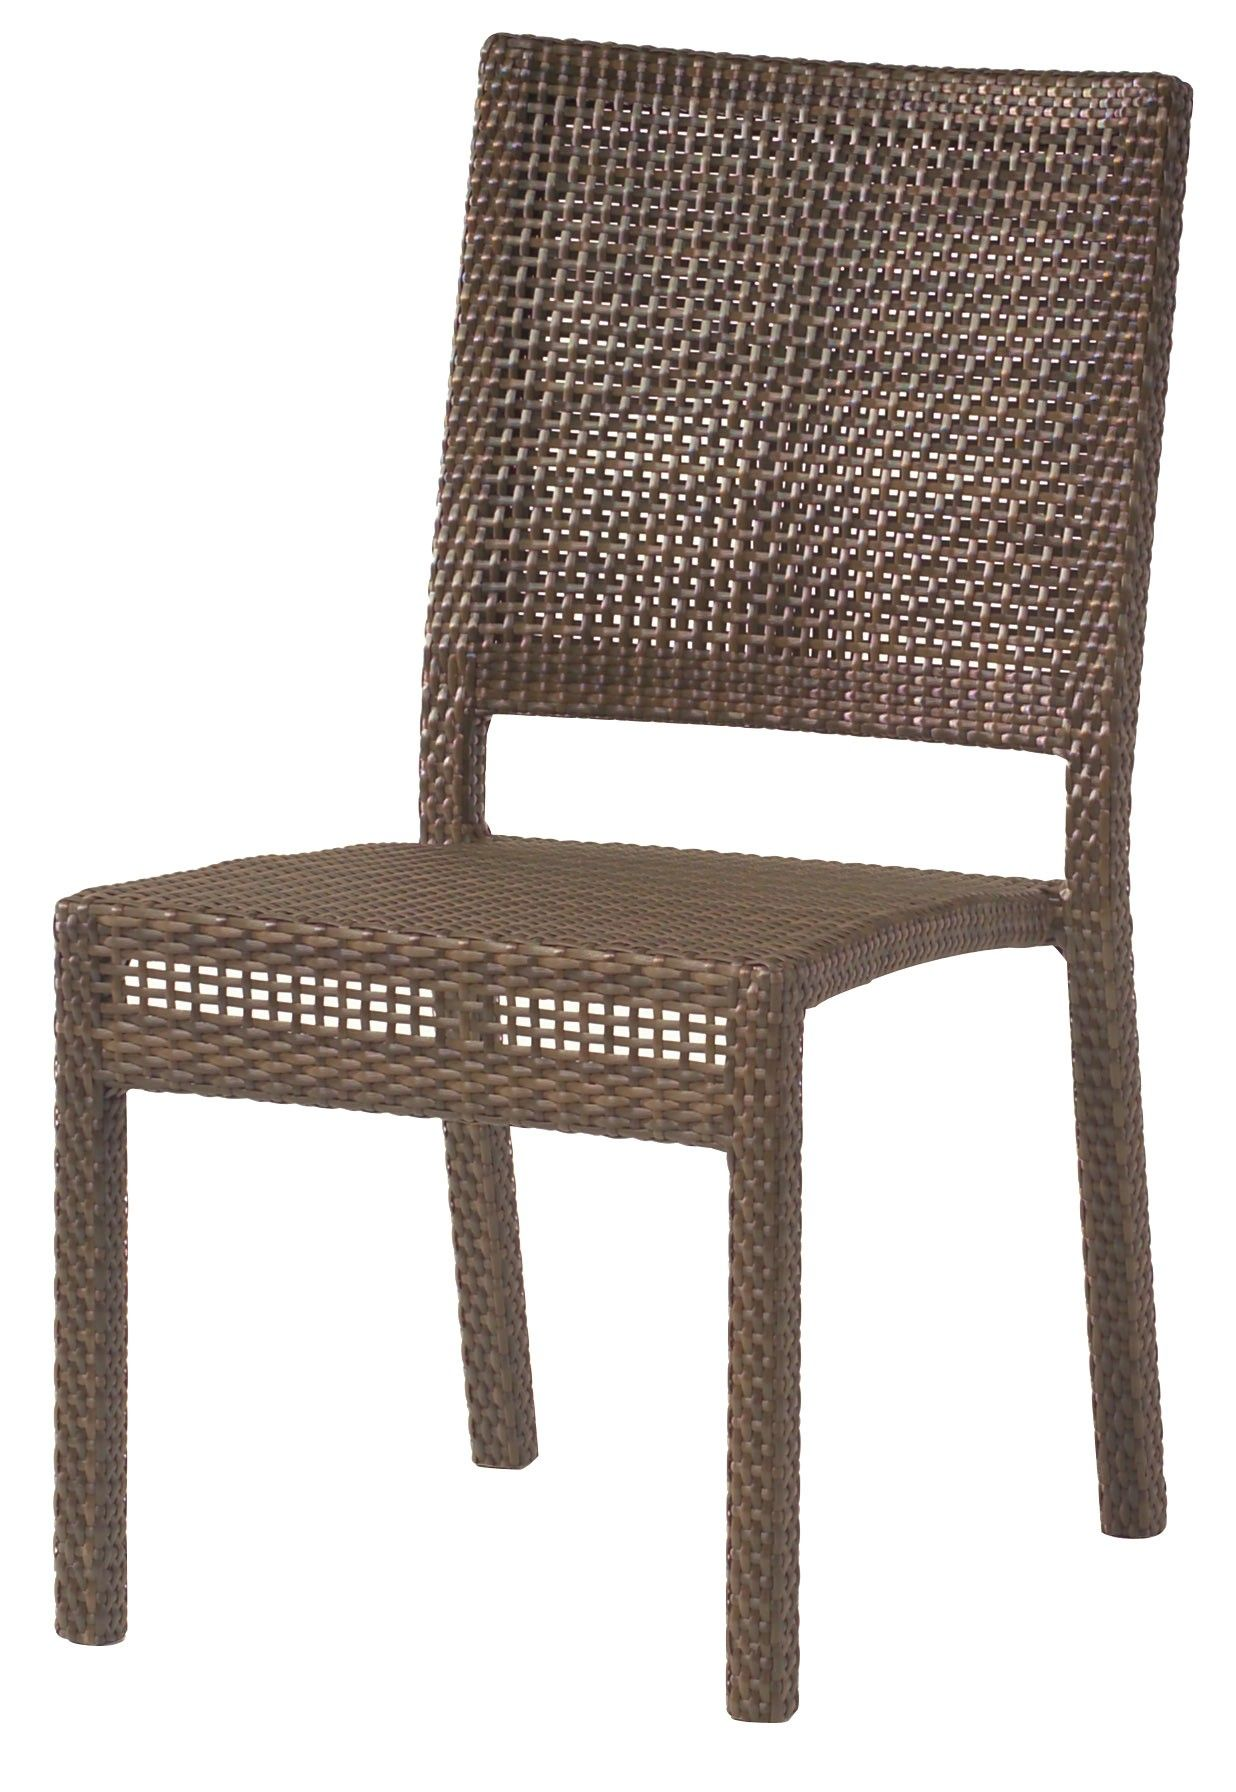 "Woodard Outdoor - All-Weather Miami Dining Side Chair - Stackable #S601511 Quick Overview: Available in Coffee or Mocha weave only. material: Woven HDPE Height: 35"" Width: 18"" Depth: 24"""